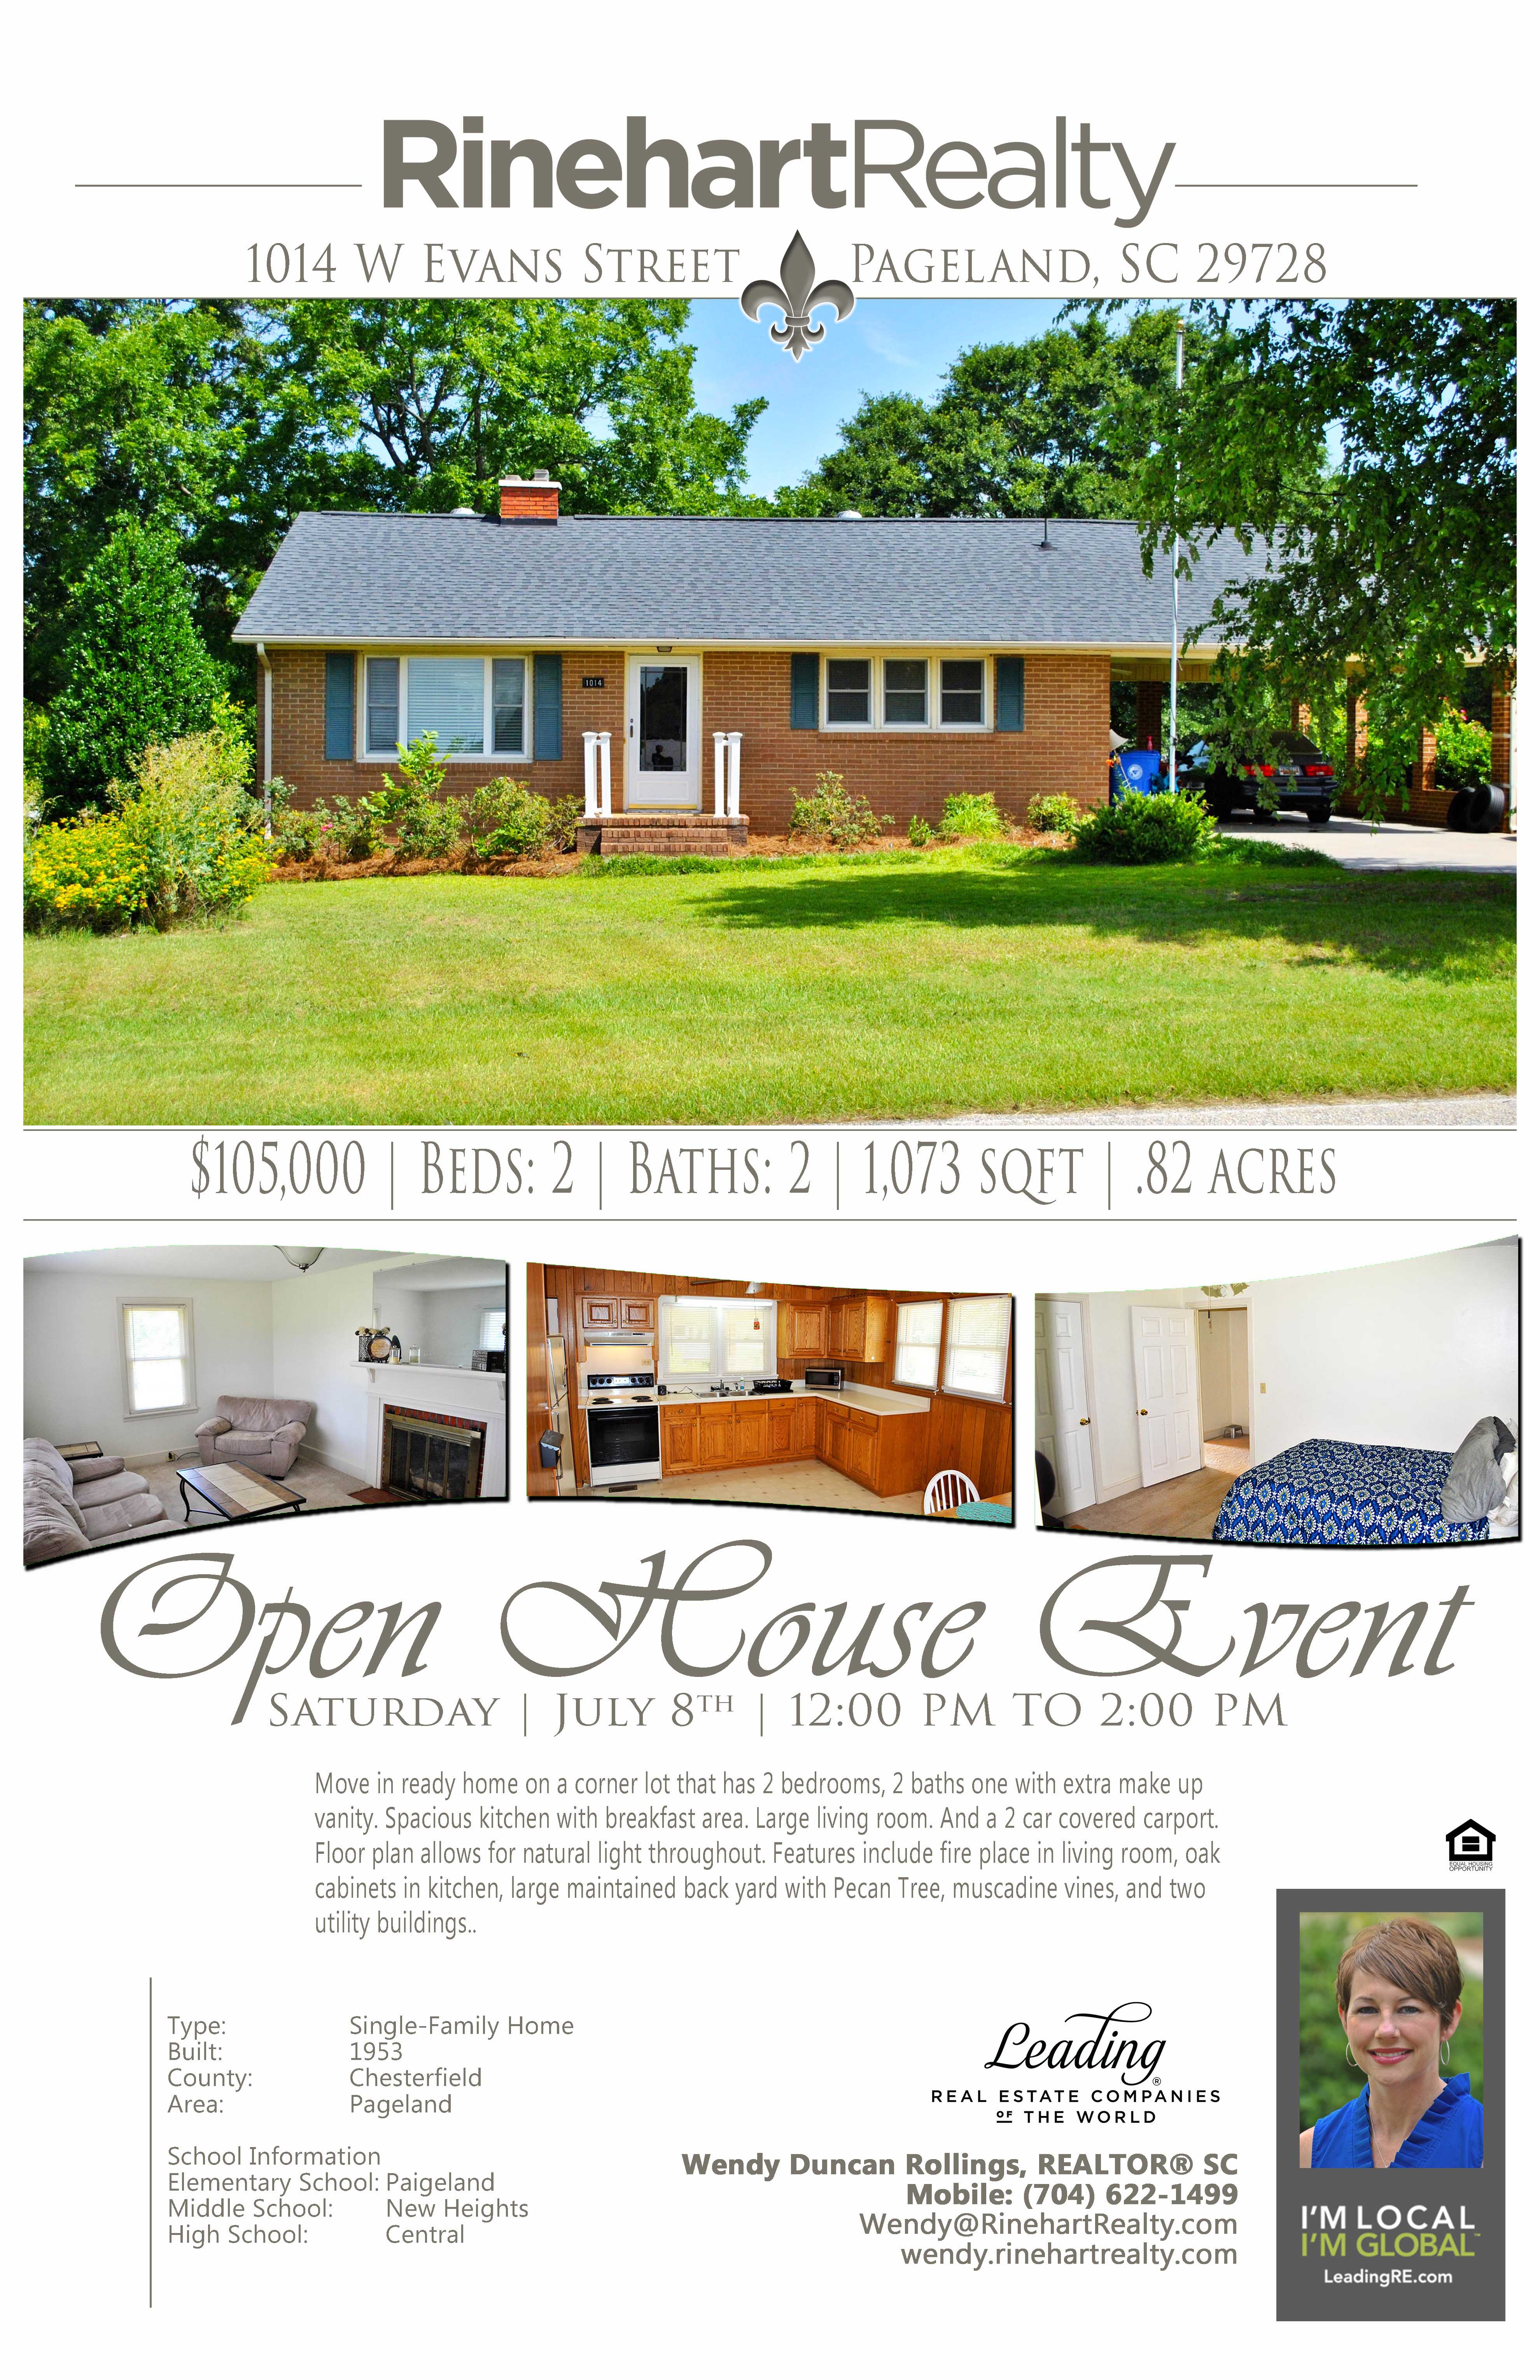 OPEN HOUSE: Saturday, July 8th | 12:00 pm to 2:00 pm  1014 W Evans Street, Pageland, SC 29728 PRICE: $105,000 Beds: 2 | Baths: 2 | 1,073 sqft | .82 acres  Move in ready home on a corner lot that has 2 bedrooms, 2 baths one with extra make up vanity. Spacious kitchen  with breakfast area. Large living room. And a 2 car covered carport. Floor plan allows for natural light throughout. Features include fire place in living room, oak cabinets in kitchen, large maintained back yard with Pecan Tree,  muscadine vines, and two utility buildings.  Hosted by:  Wendy Duncan Rollings, REALTOR® SC Mobile: (704) 622-1499 Wendy@RinehartRealty.com wendy.rinehartrealty.com